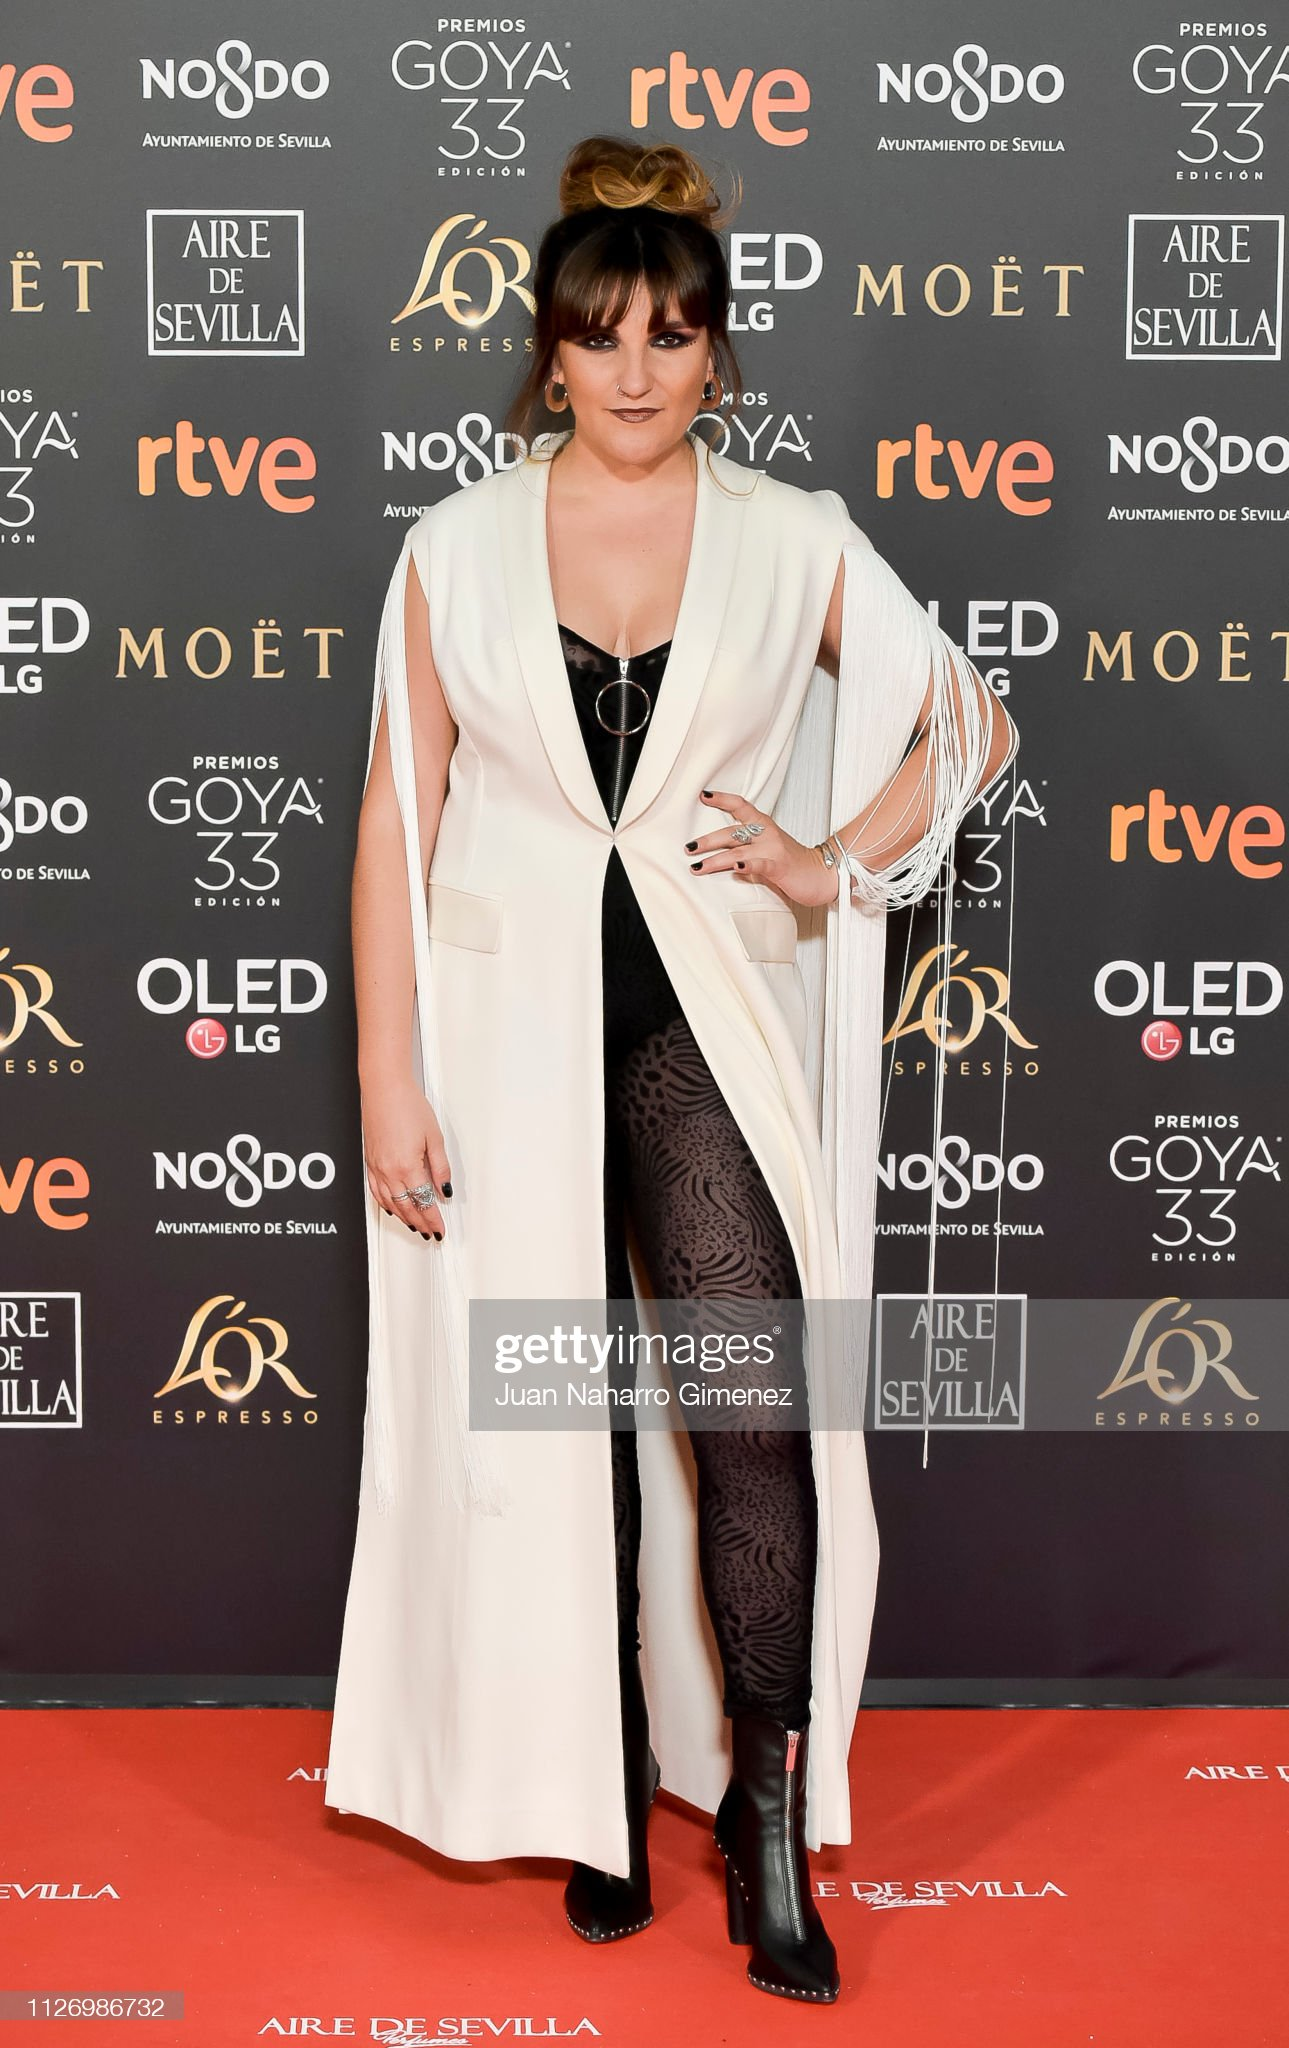 ¿Cuánto mide Rozalén? - Altura Rozalen-attends-the-goya-cinema-awards-2019-during-the-33rd-edition-picture-id1126986732?s=2048x2048